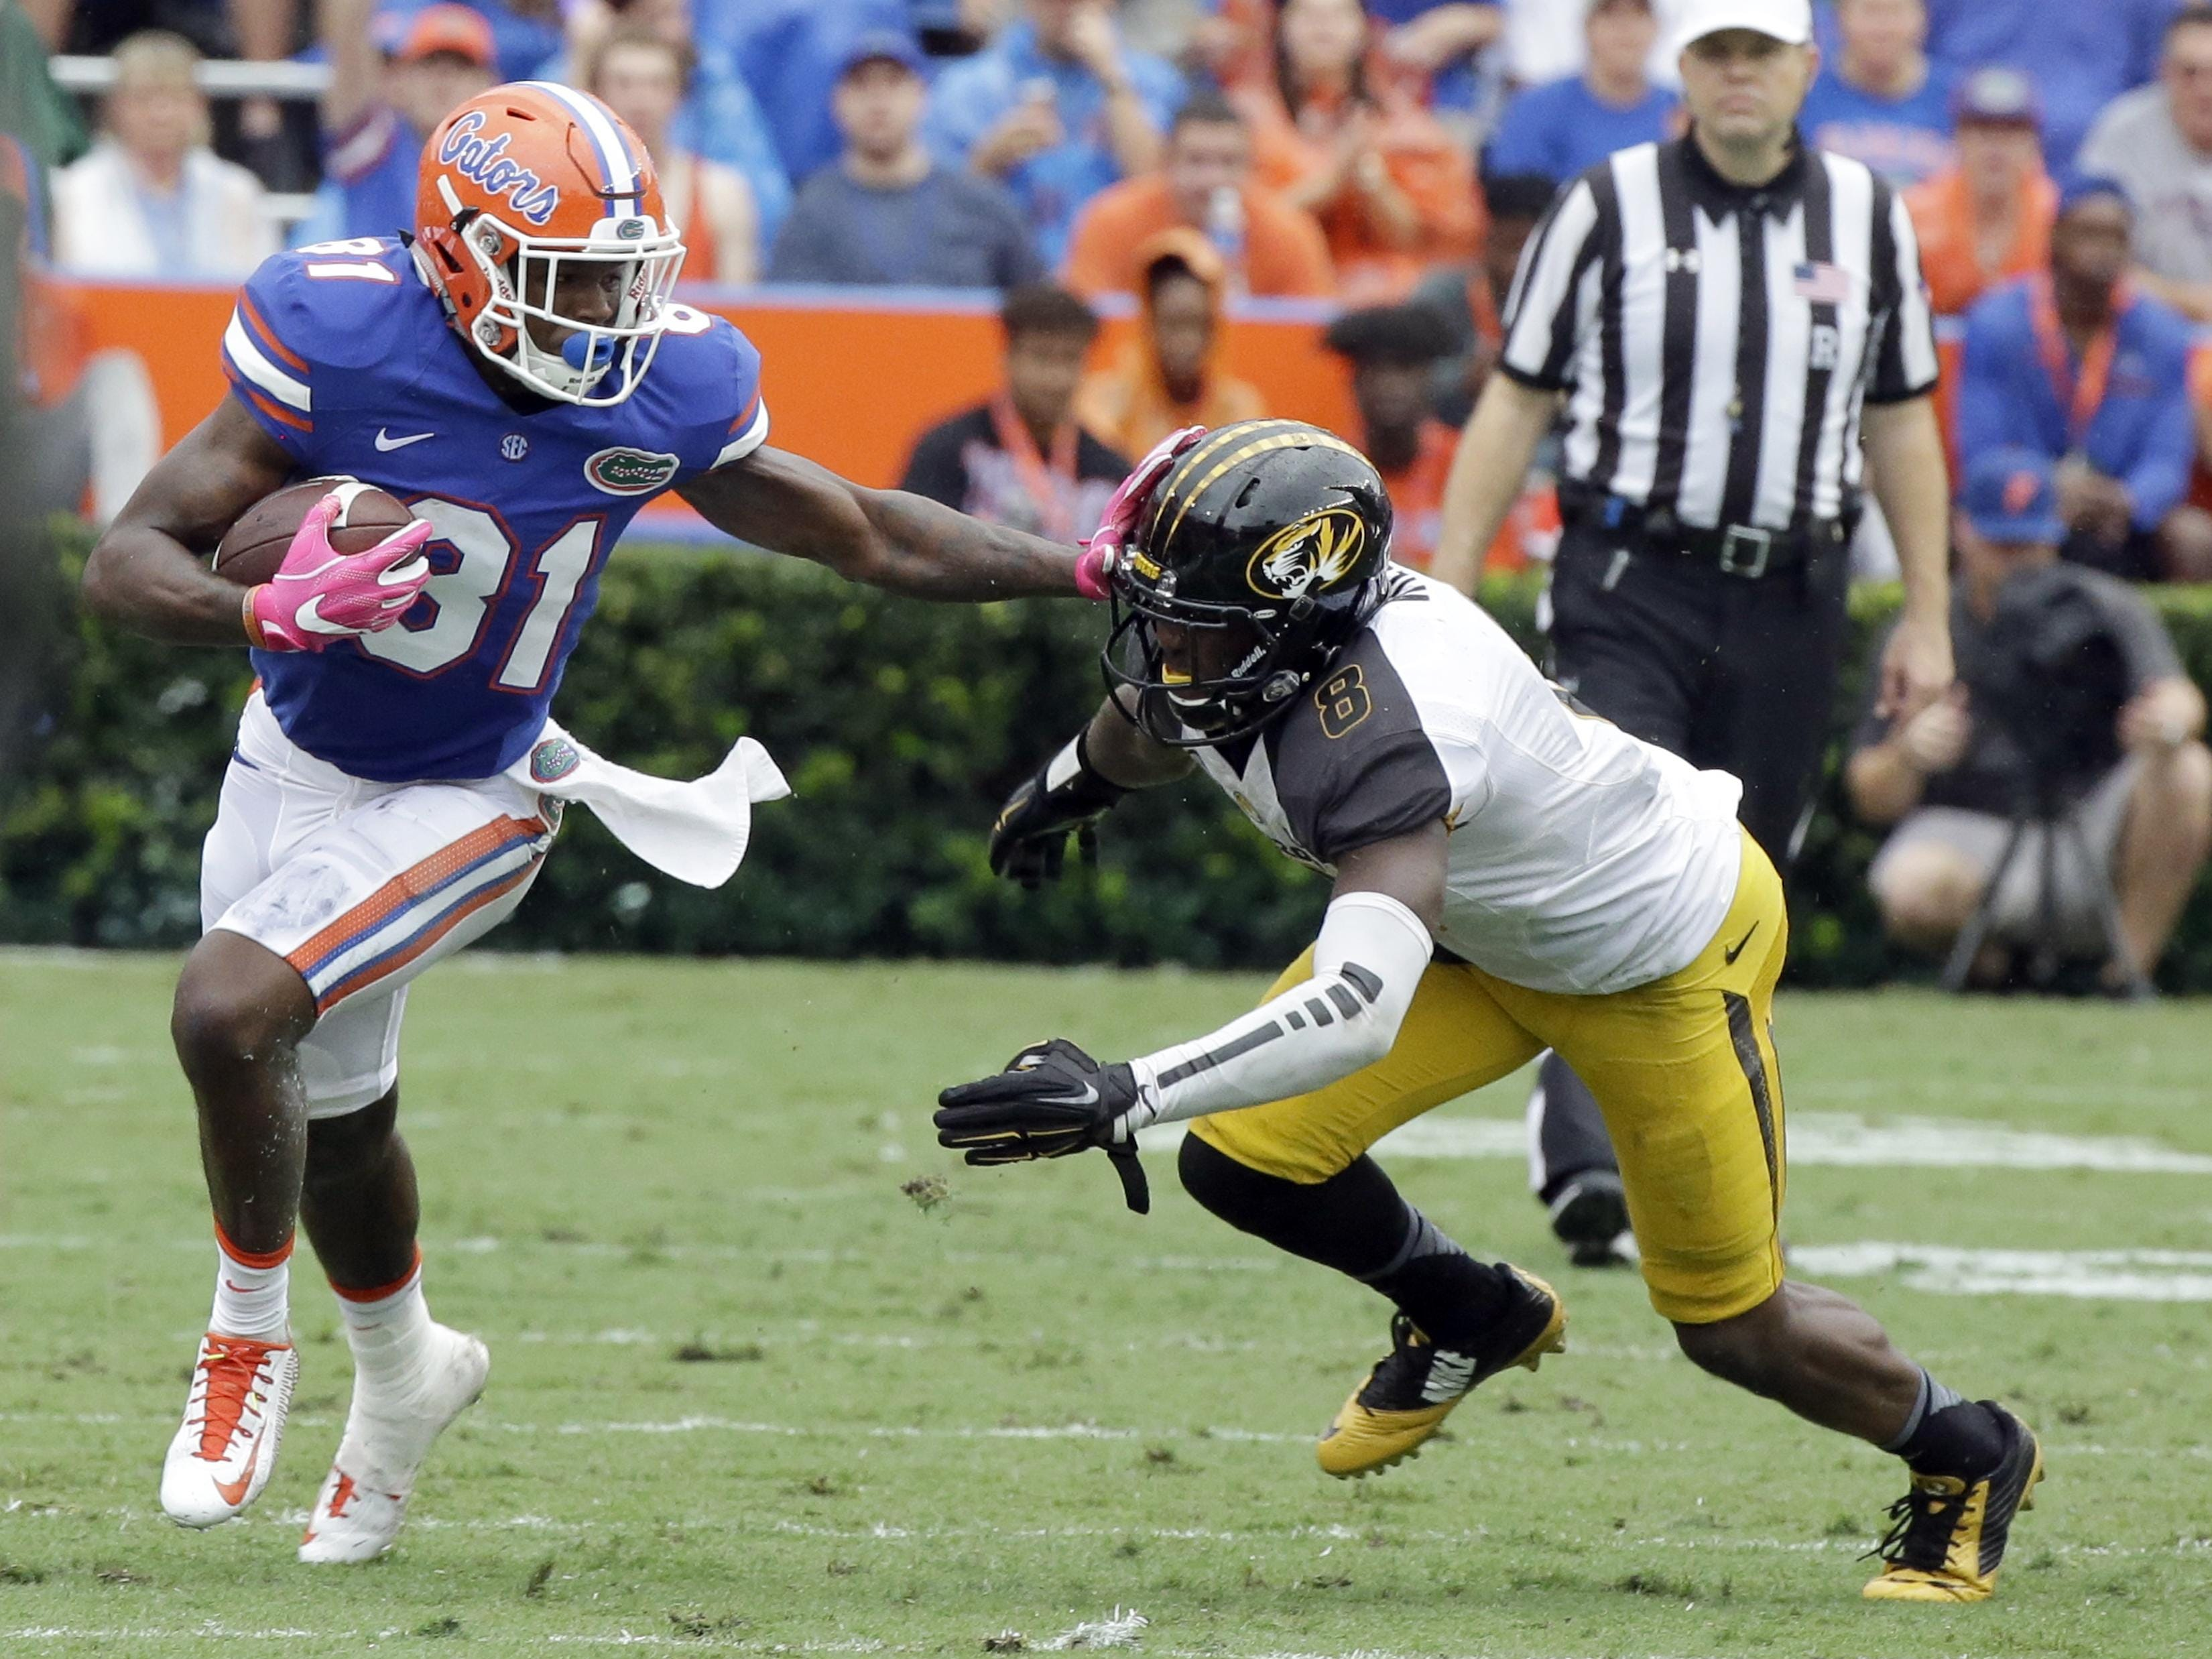 Florida wide receiver Antonio Callaway (81) tries to get around Missouri safety Thomas Wilson after a reception in the first half of an NCAA college football game, Saturday, Oct. 15, 2016, in Gainesville, Fla. (AP Photo/John Raoux)